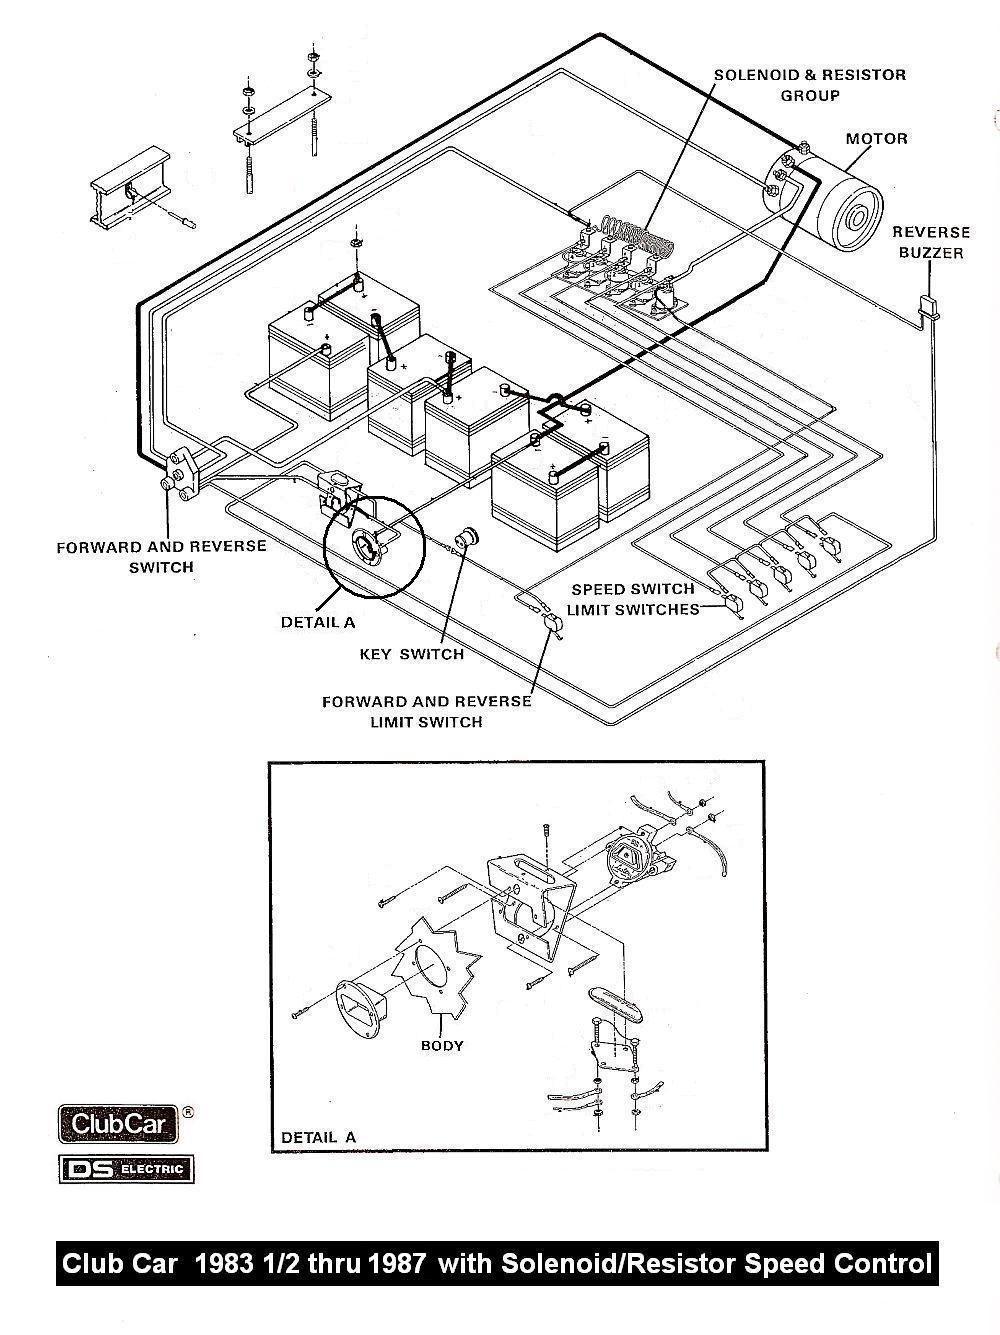 0e8d045370be7682b159825224221faa vintagegolfcartparts com *freezer & crock pot* pinterest 1985 club car electric wiring diagram at bakdesigns.co